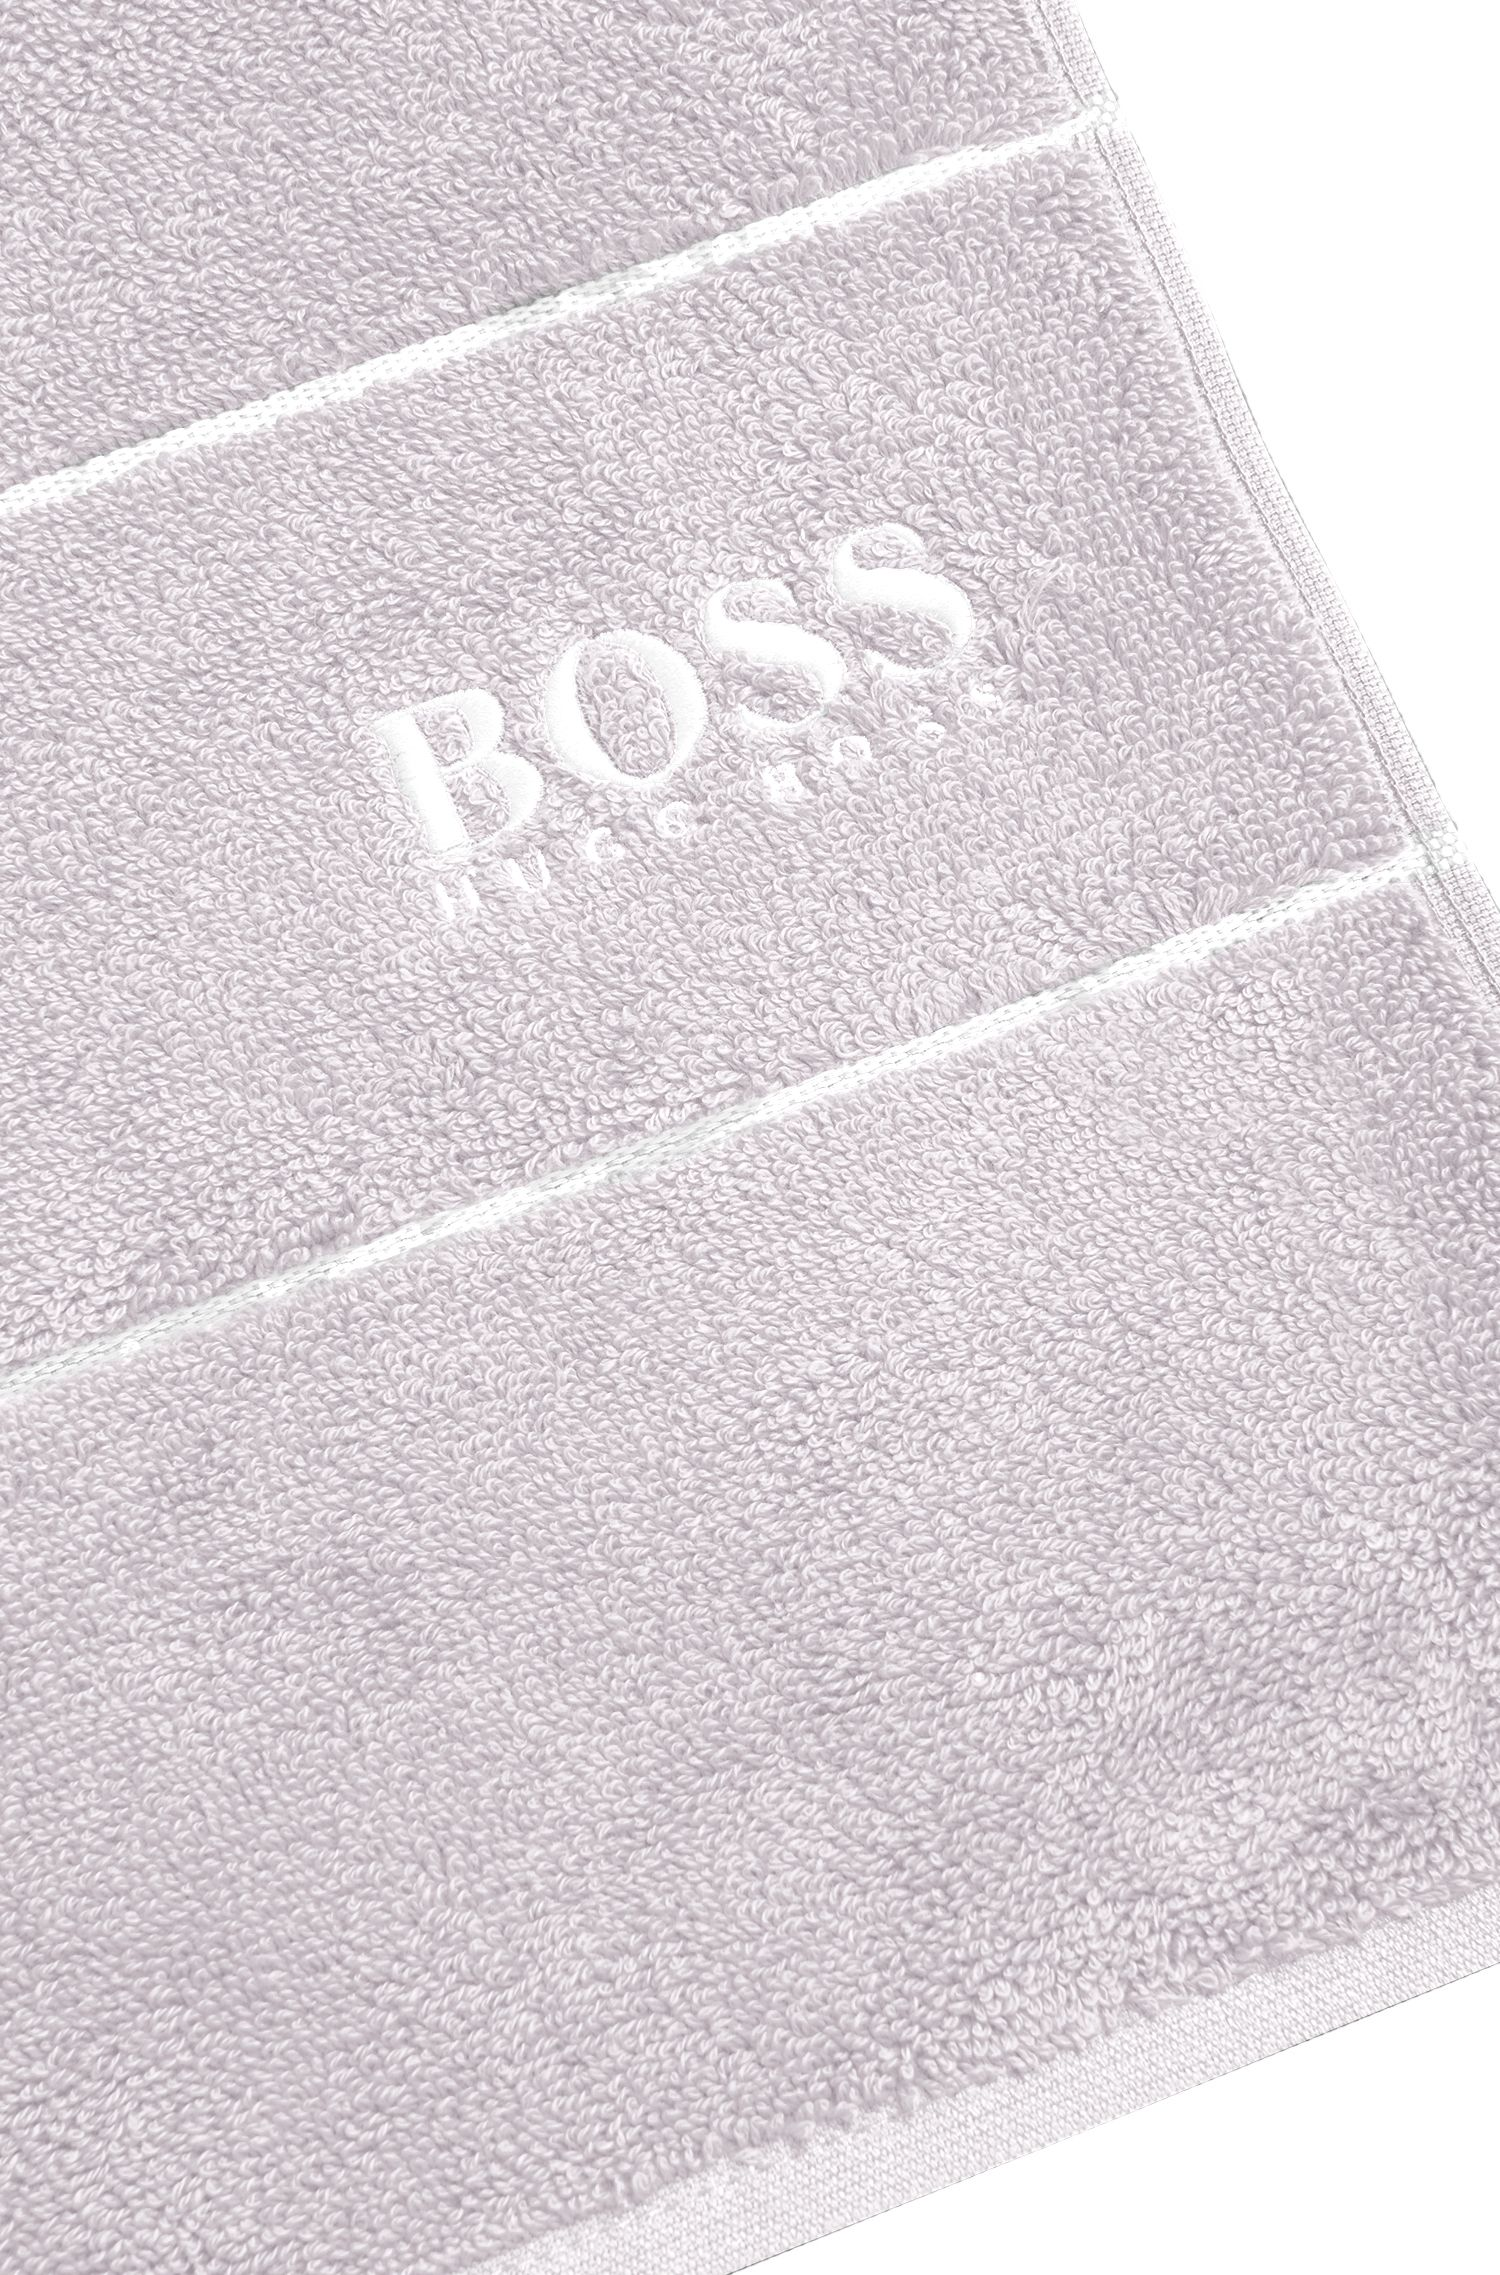 Finest Egyptian cotton hand towel with logo border, Silver